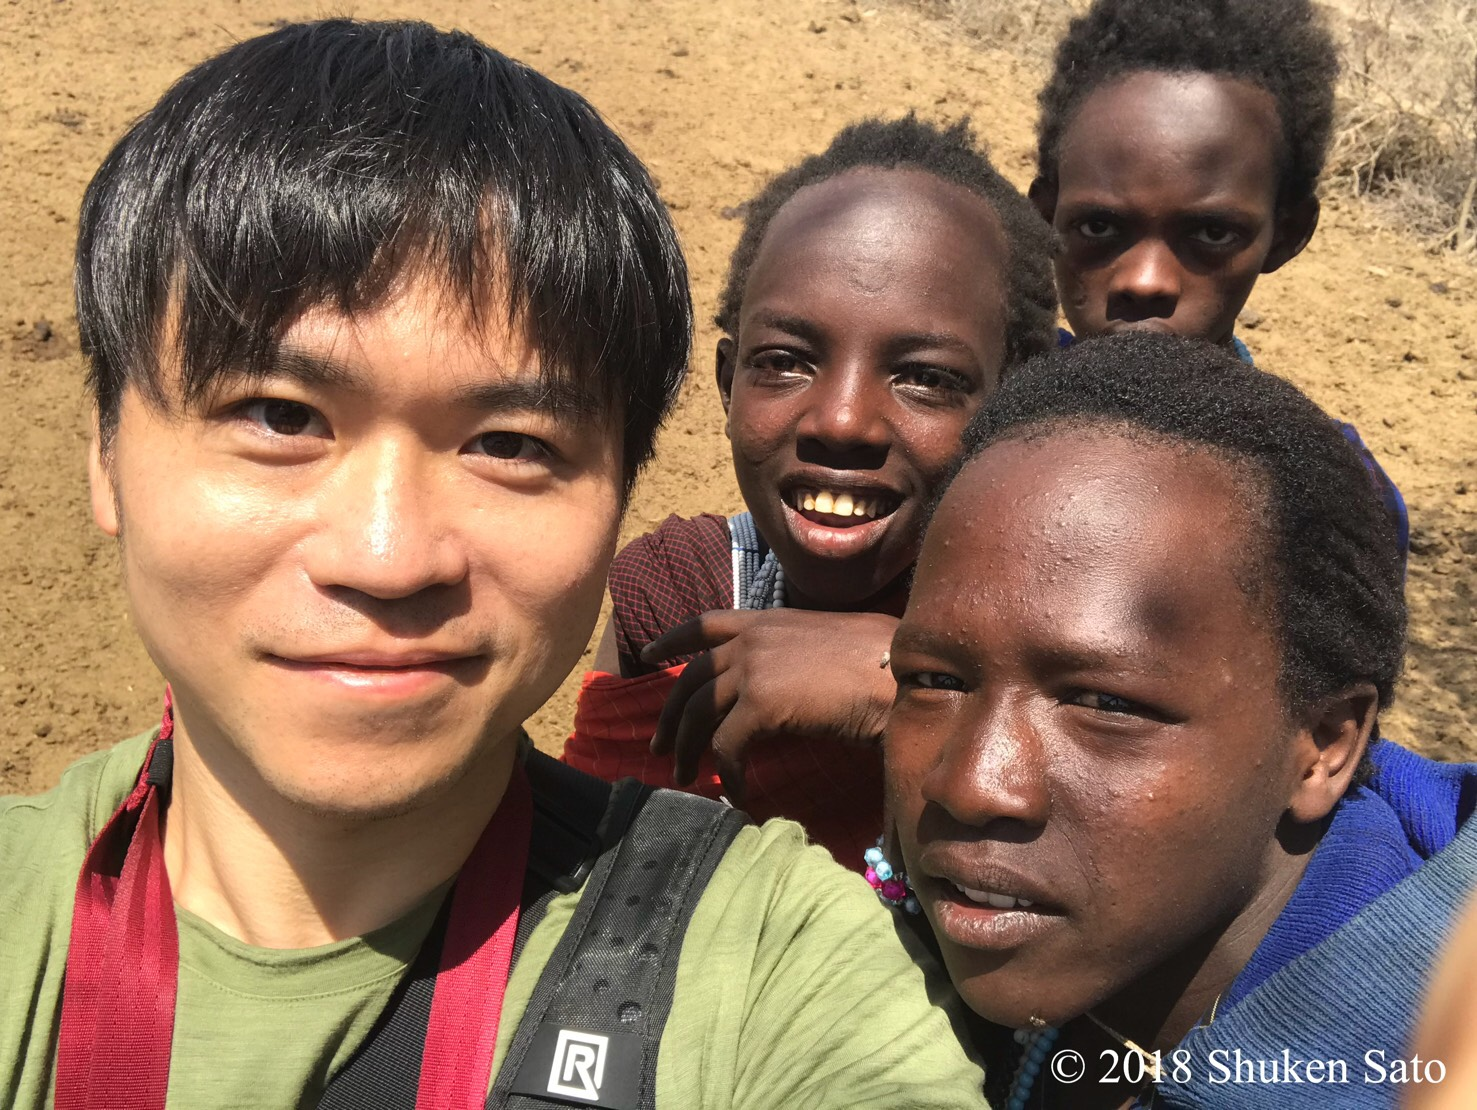 Shuken Sato with Kenyan Kids